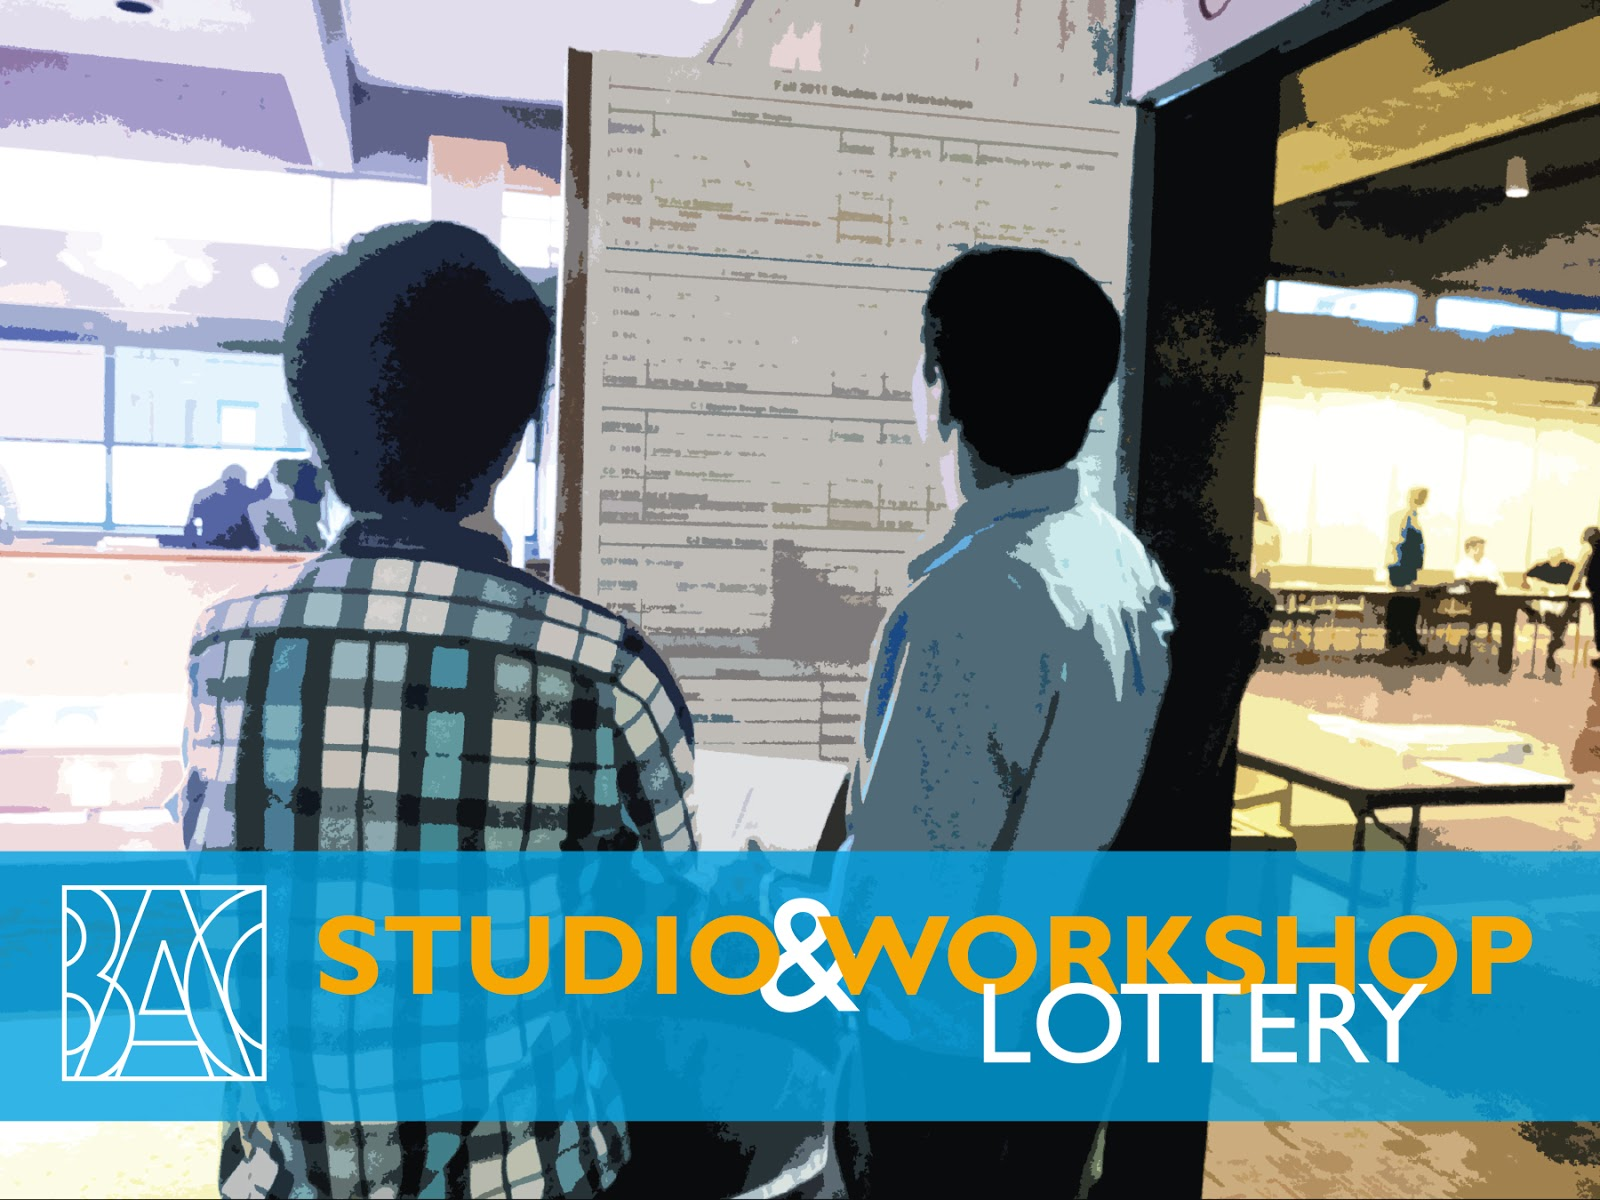 Fall 2014 studio workshop lottery results